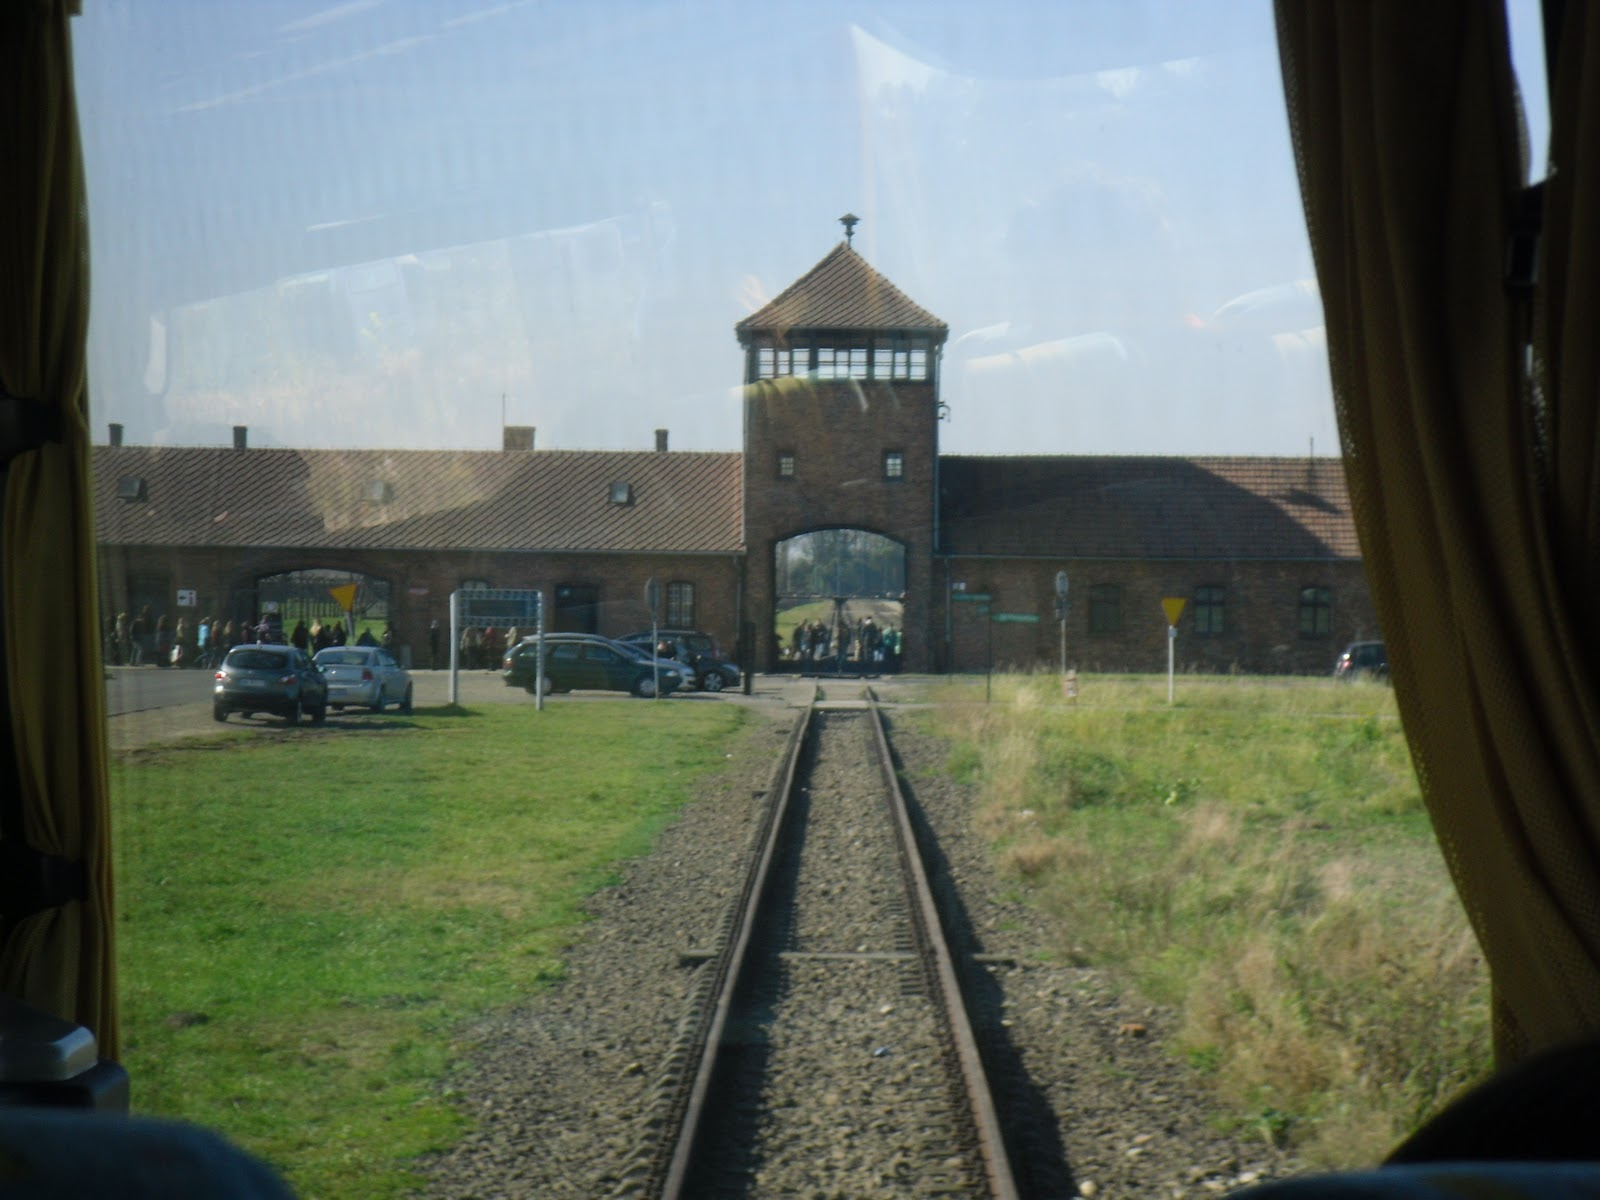 rjr daydreamer auschwitz the scene at auschwitz in the film schindler s list was shot here on the outside of the camp in a mirror image set of the